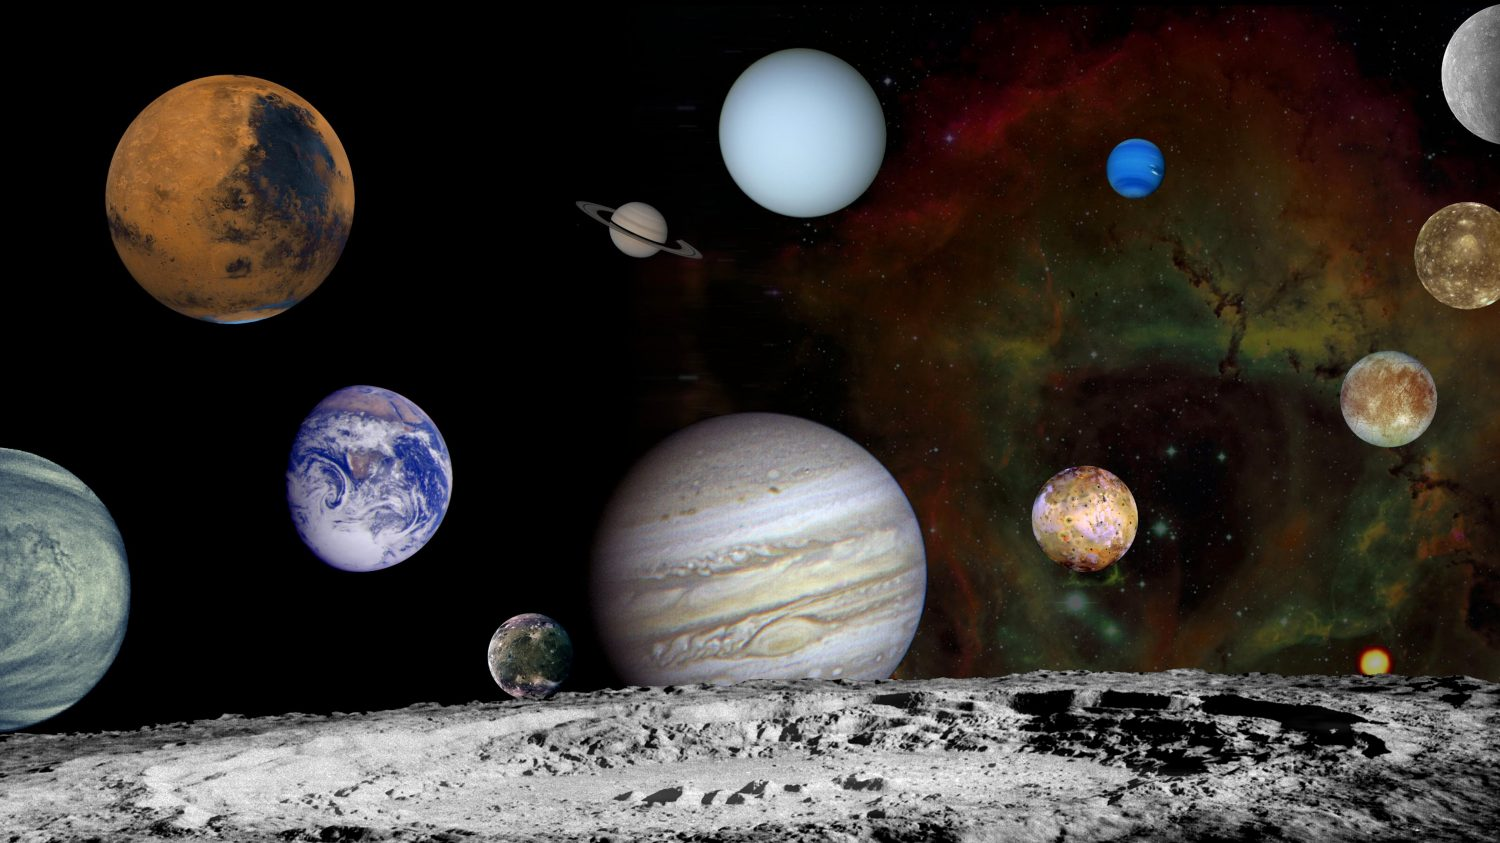 all seven planets in the solar system will be visible in the sky this month